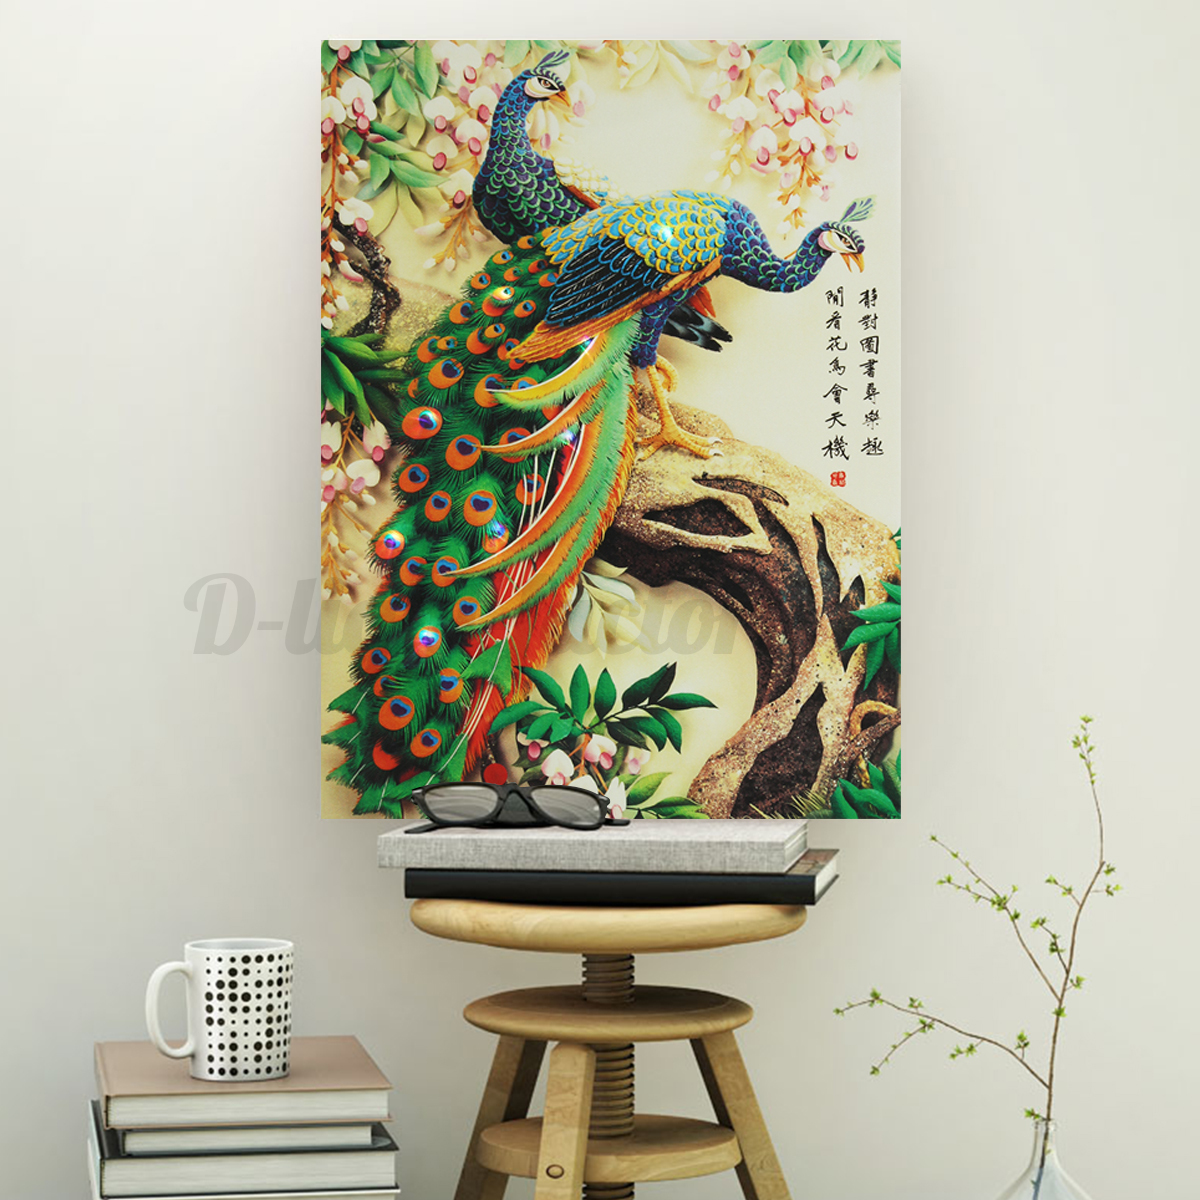 led light up christmas love swan canvas print picture wall hanging decor 30x40cm ebay. Black Bedroom Furniture Sets. Home Design Ideas